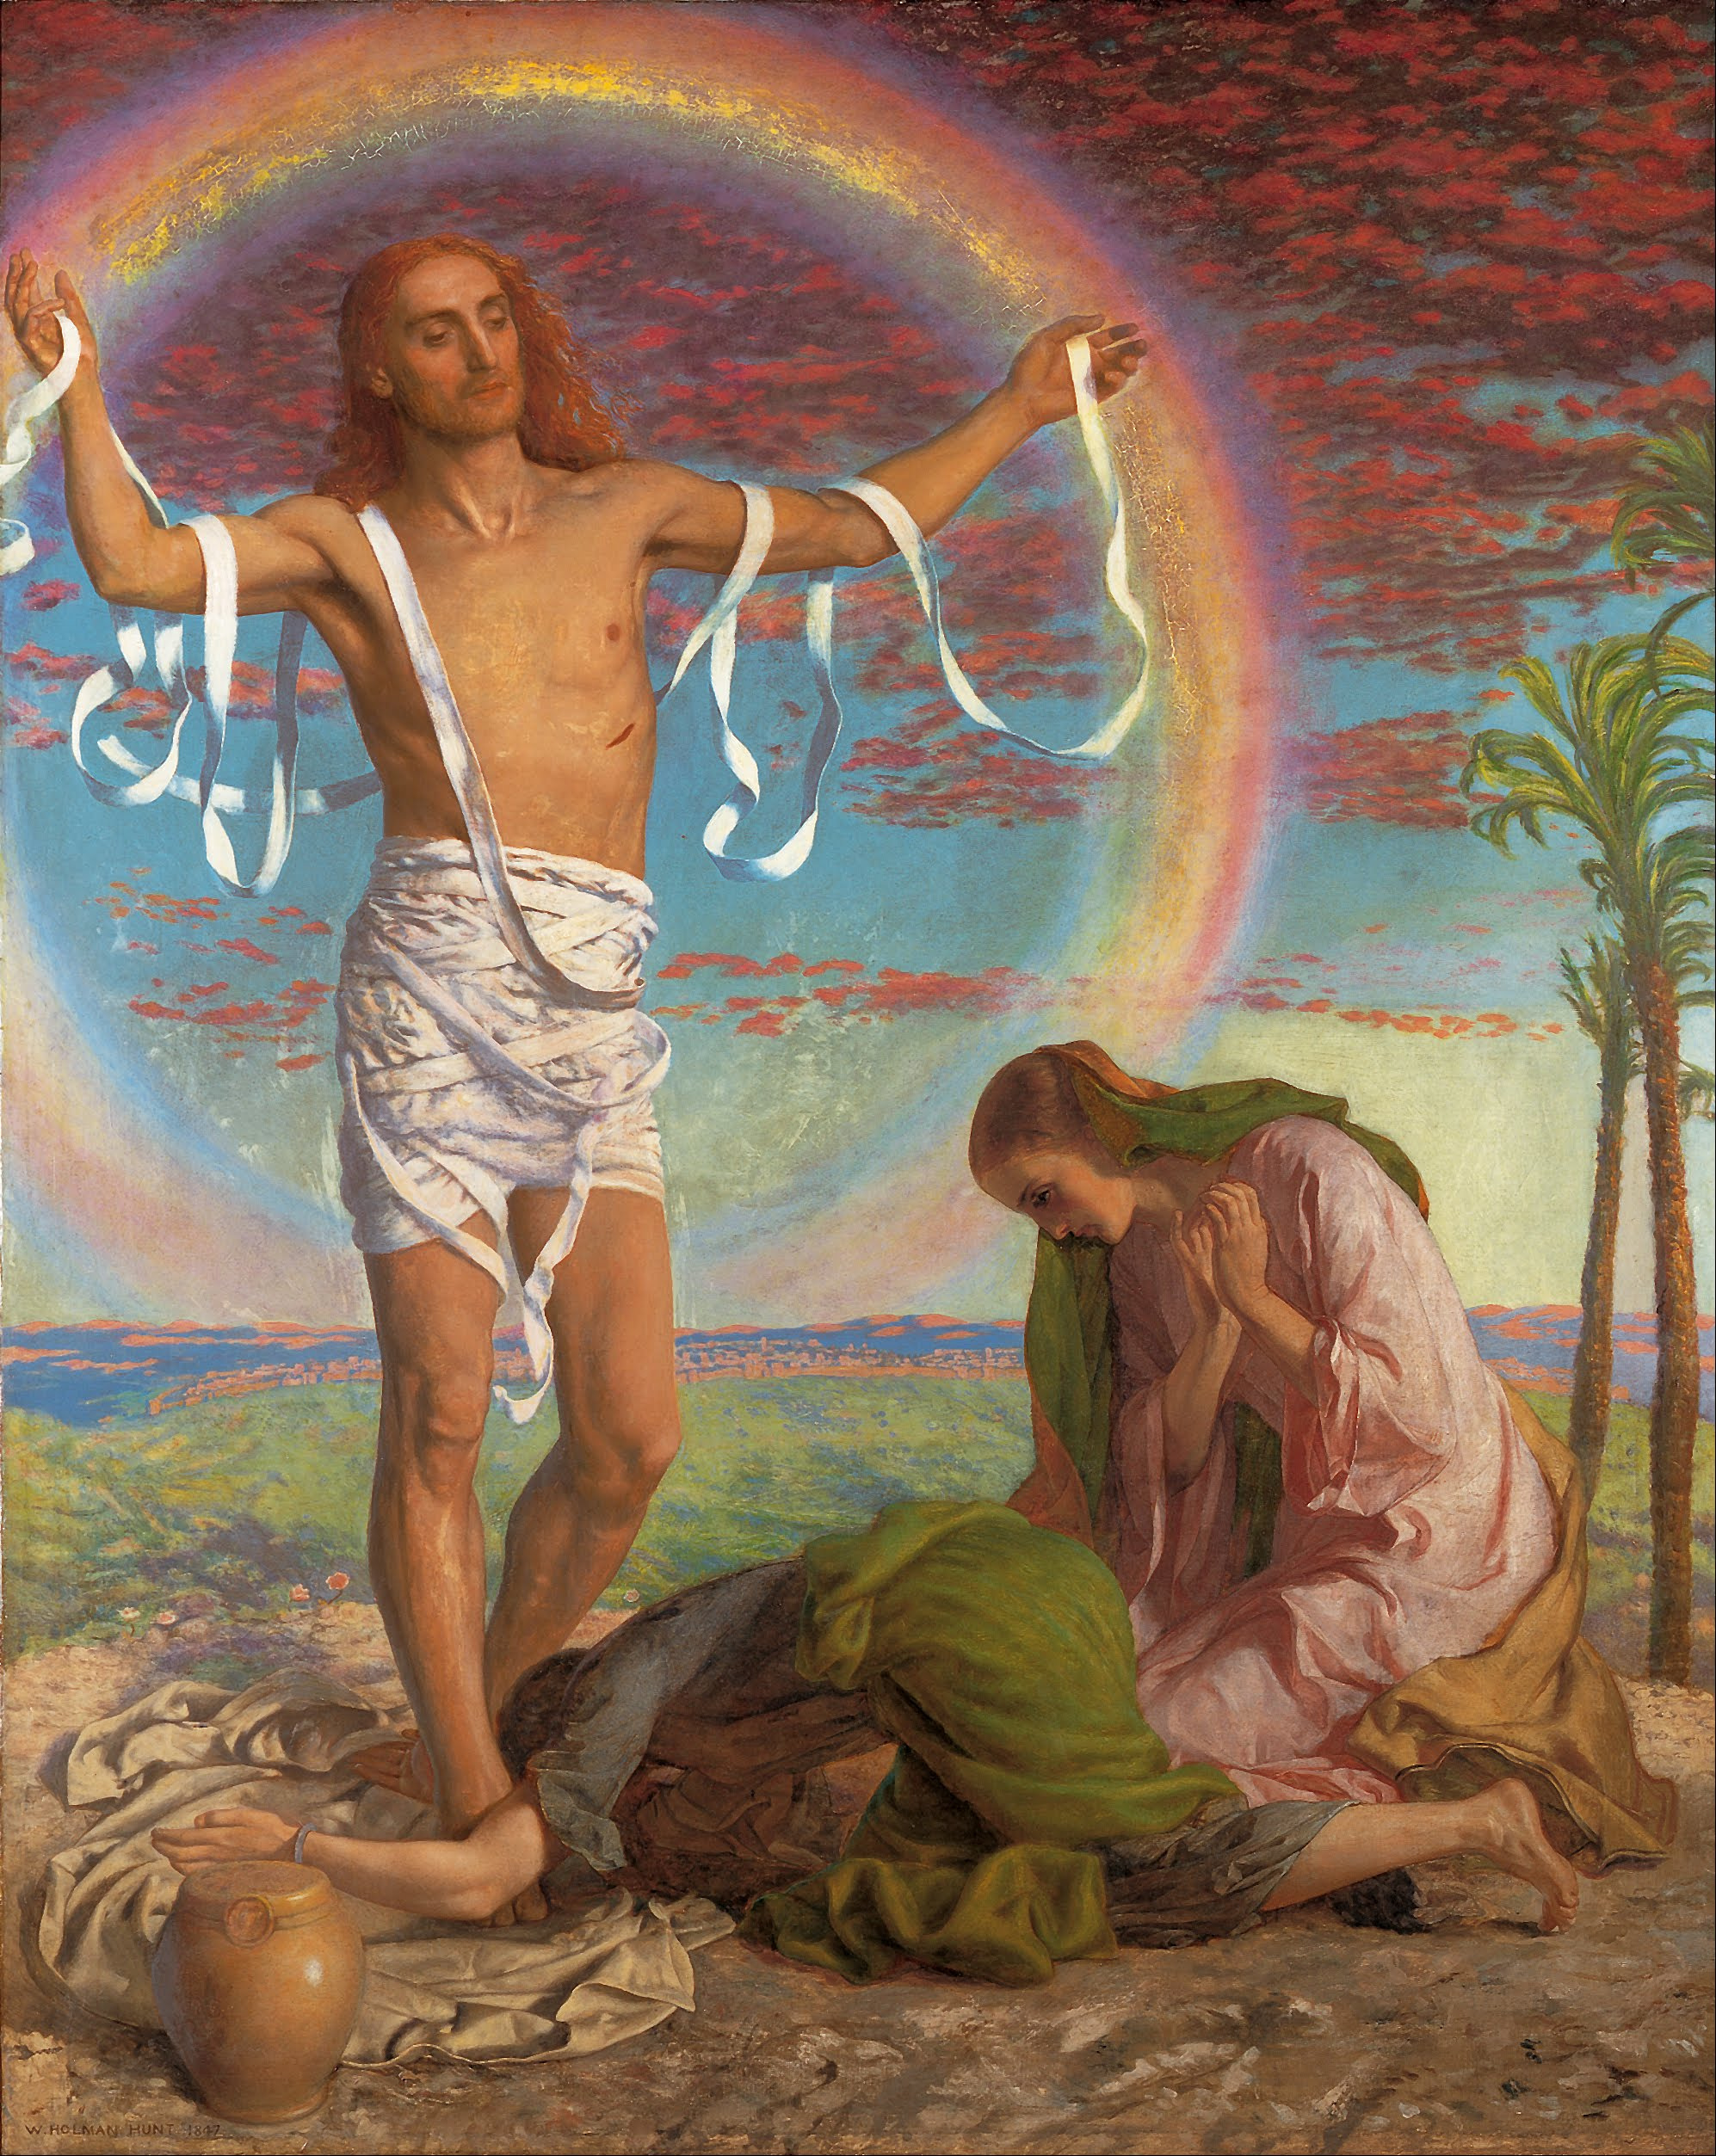 Christ and the two Marys, by William Holman Hunt, 1847 & 1897